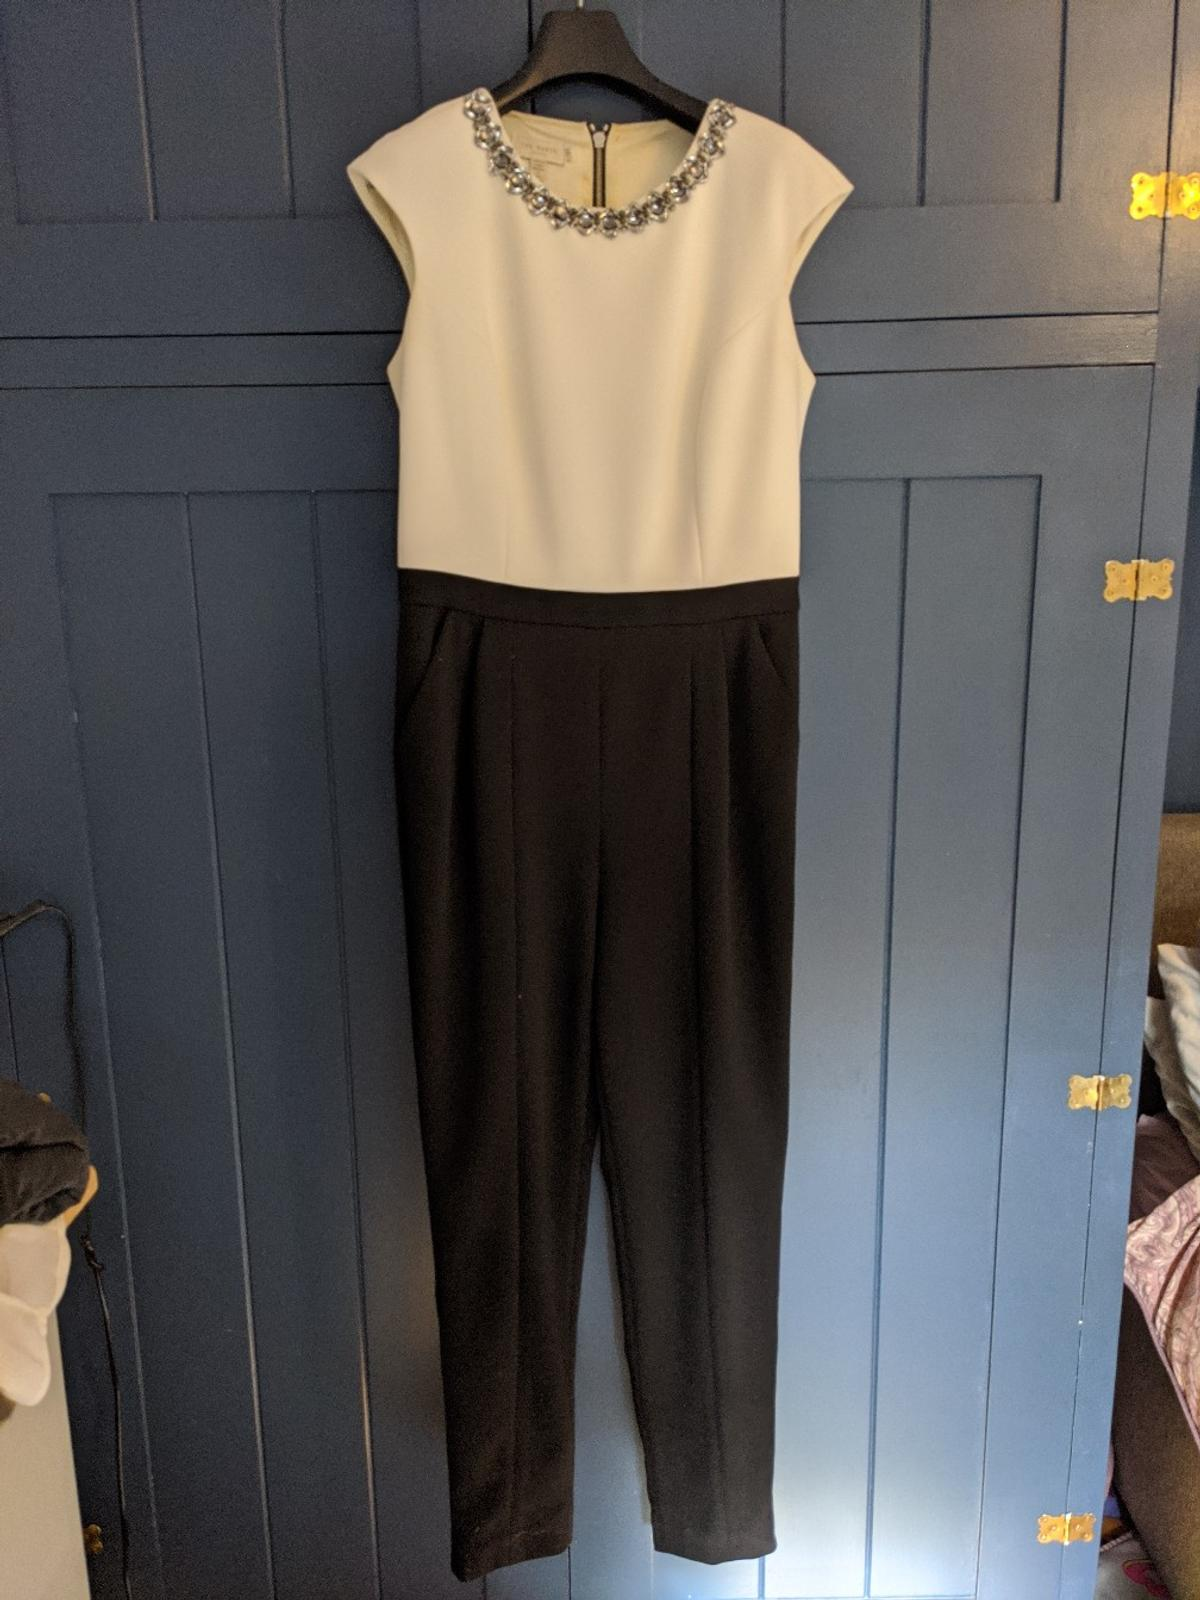 område Träning porlande  Womens clothes in GU31 Hampshire for £40.00 for sale | Shpock